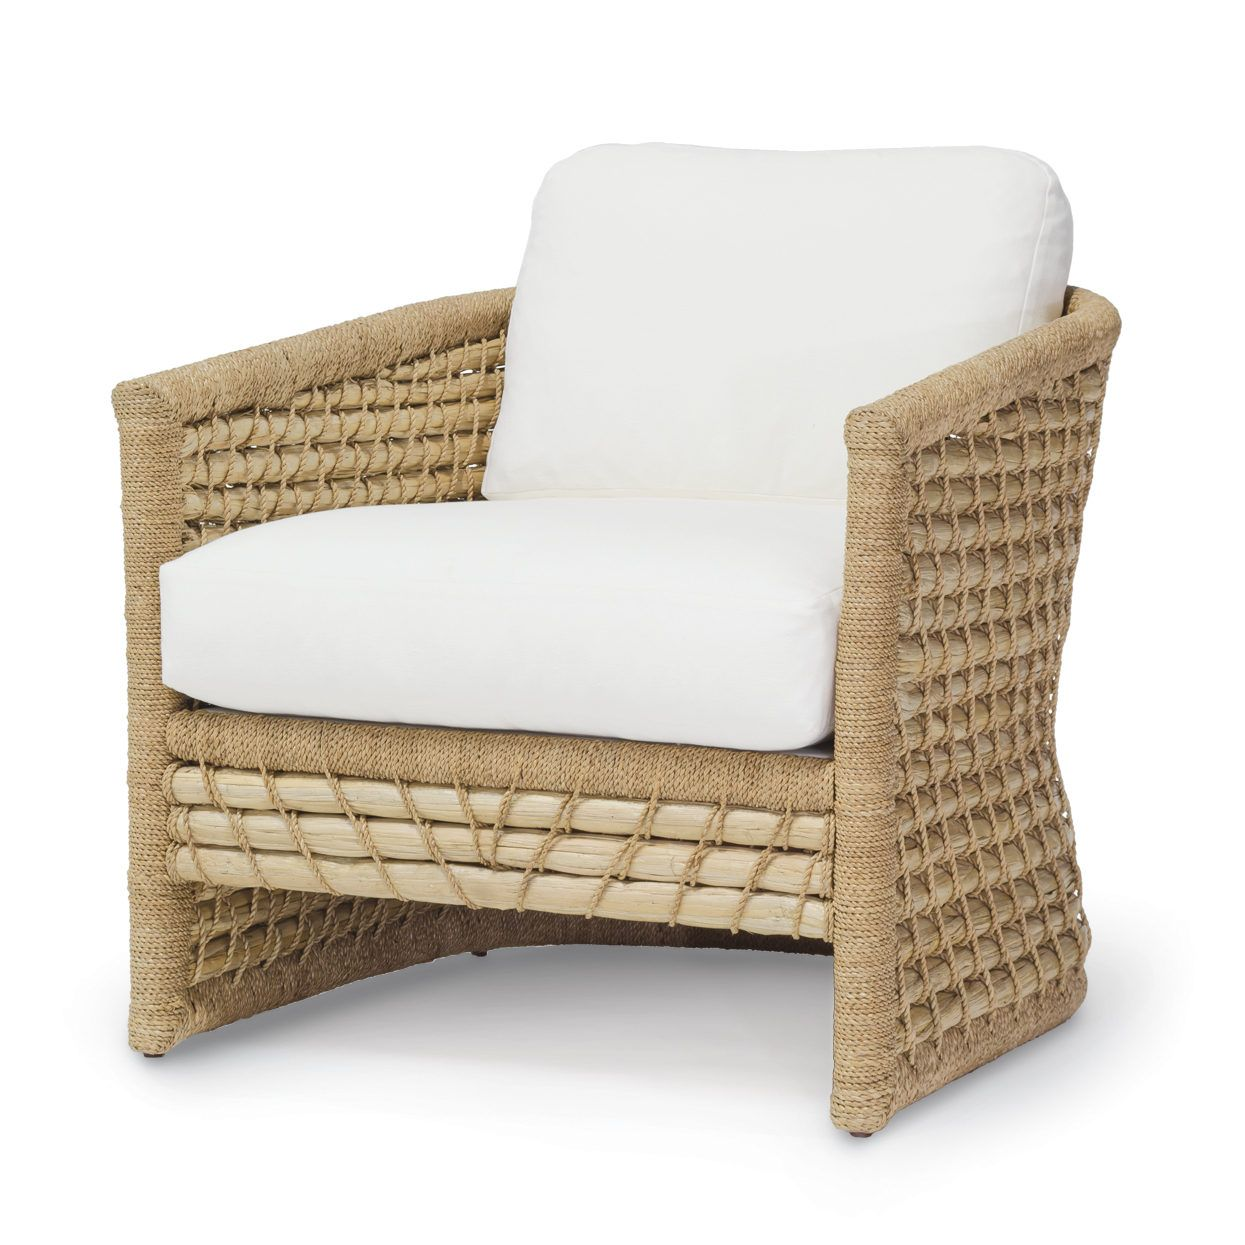 Www.palecek.com Products 710201 F 02 03 CAPITOLA LOUNGE CHAIR